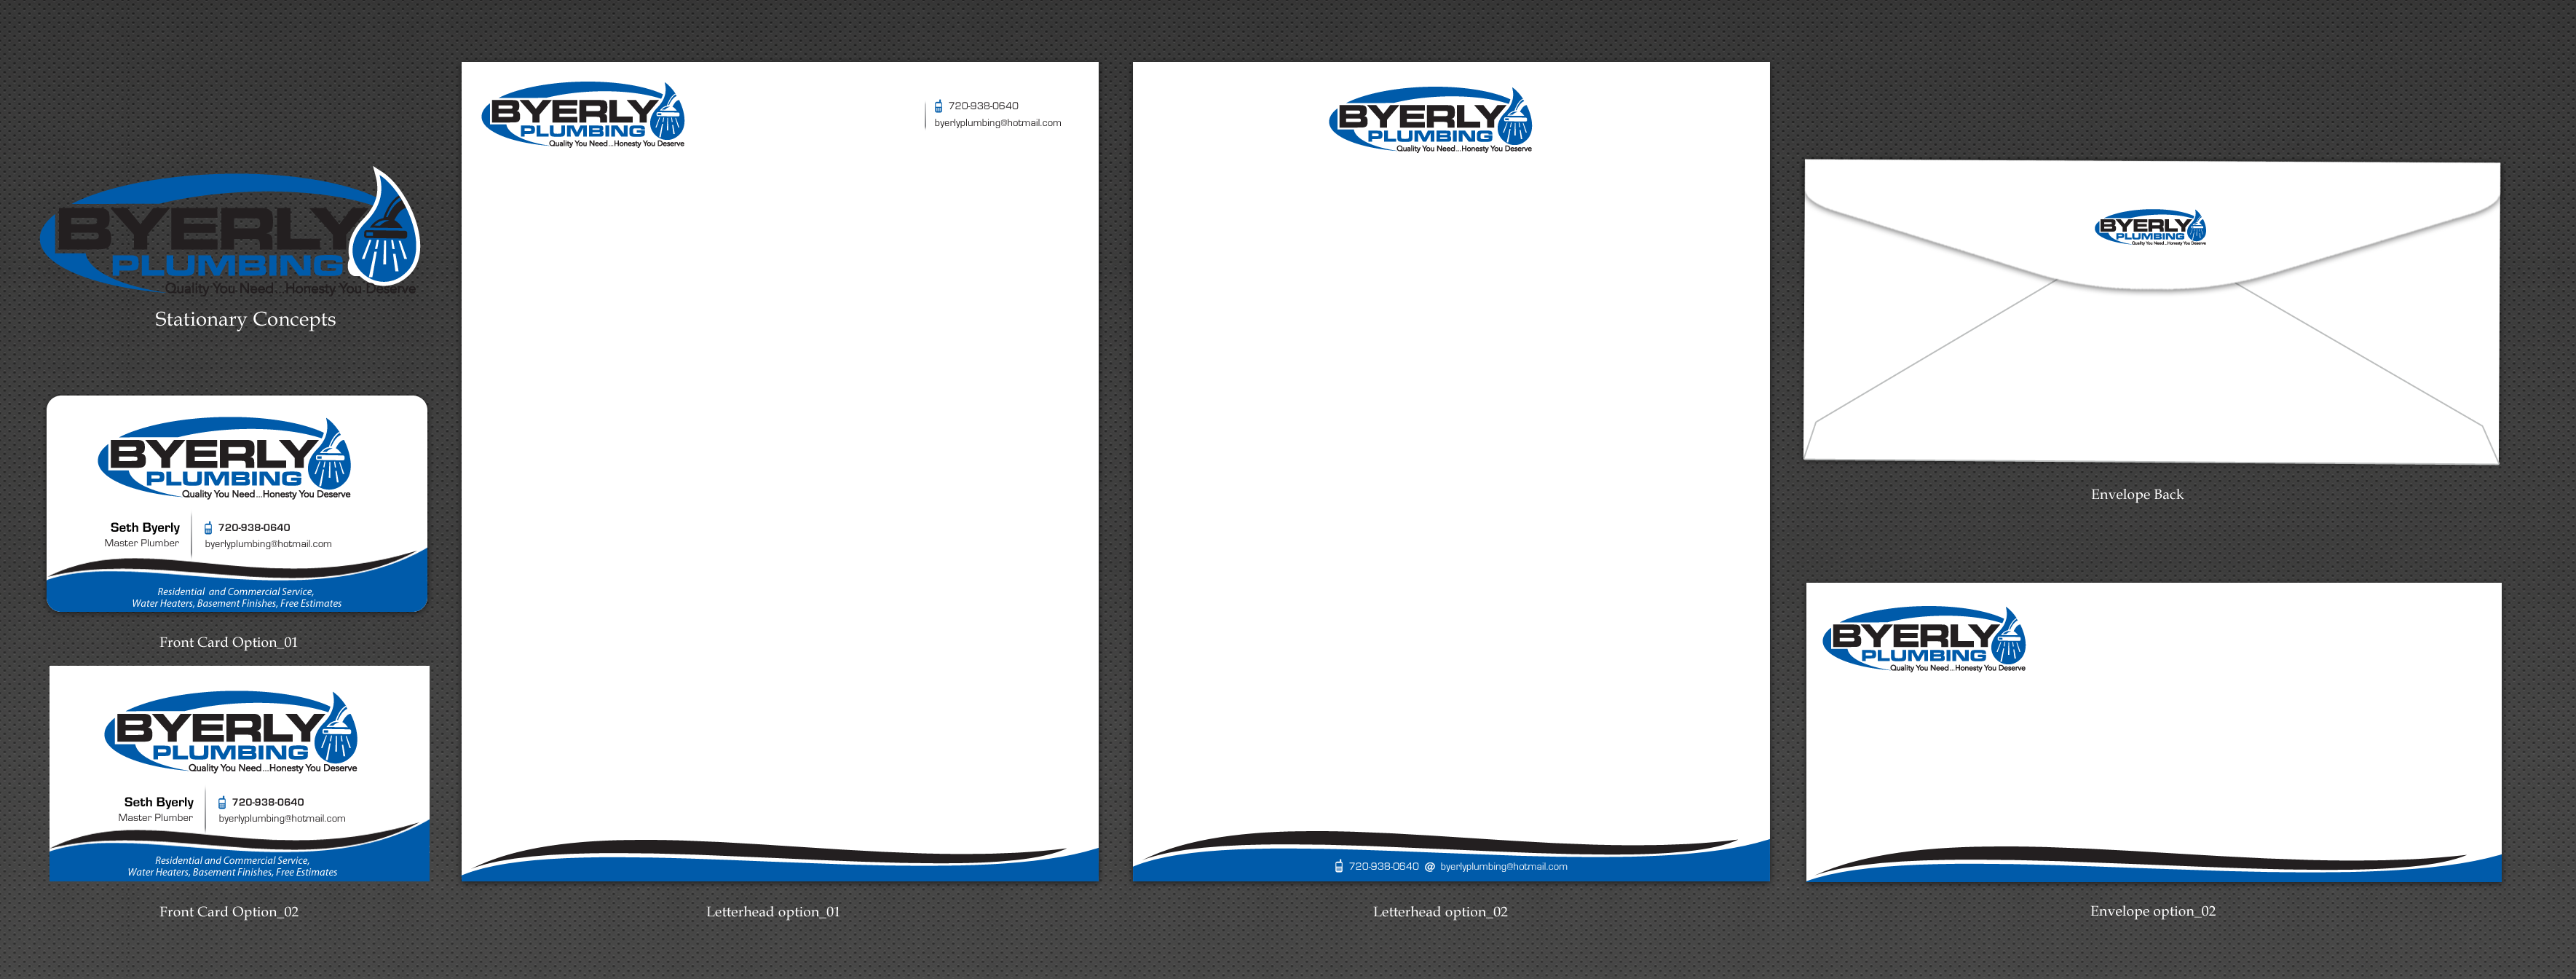 fax cover sheet design